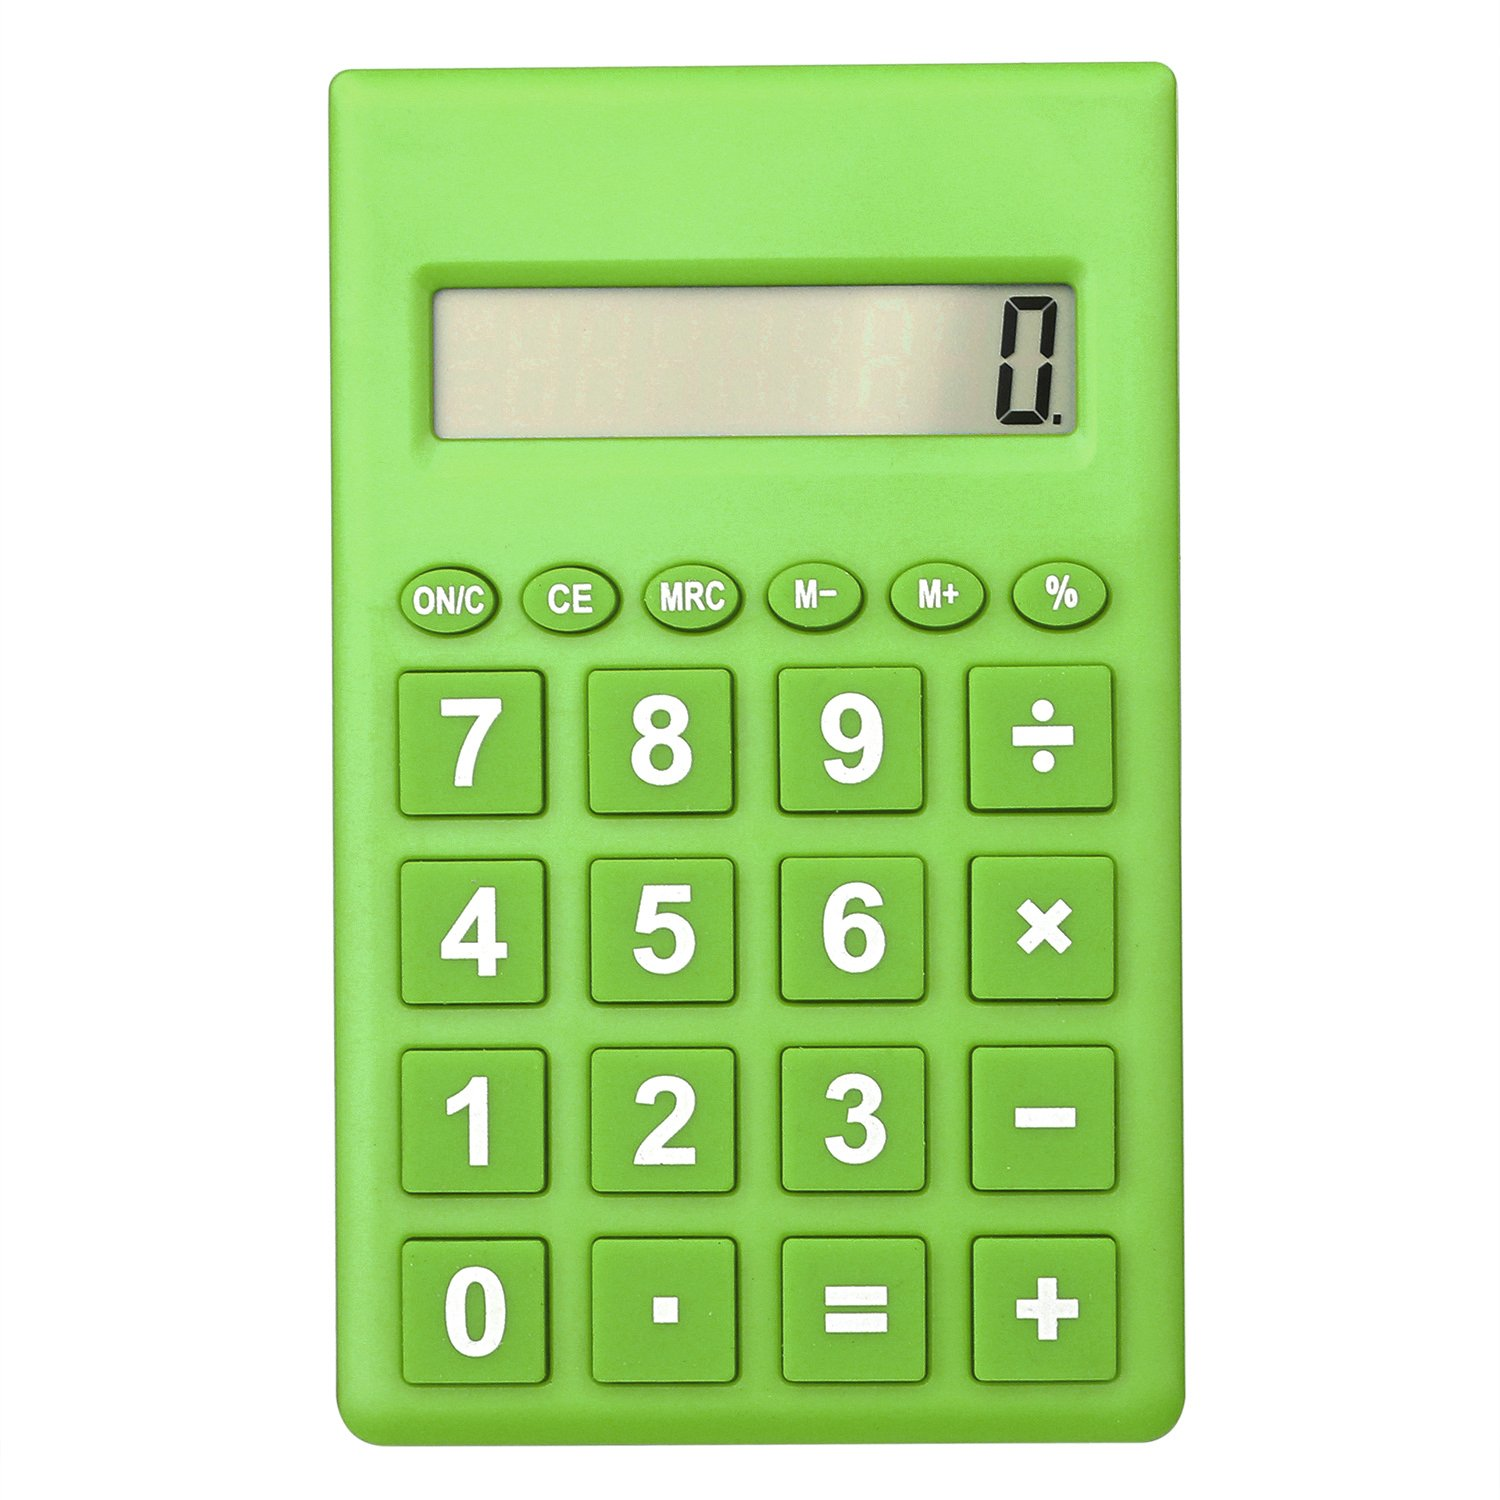 Bear Motion Mini Standard Function Handheld Calculator 8-digit Display - Green BMMINISTDCALCGN